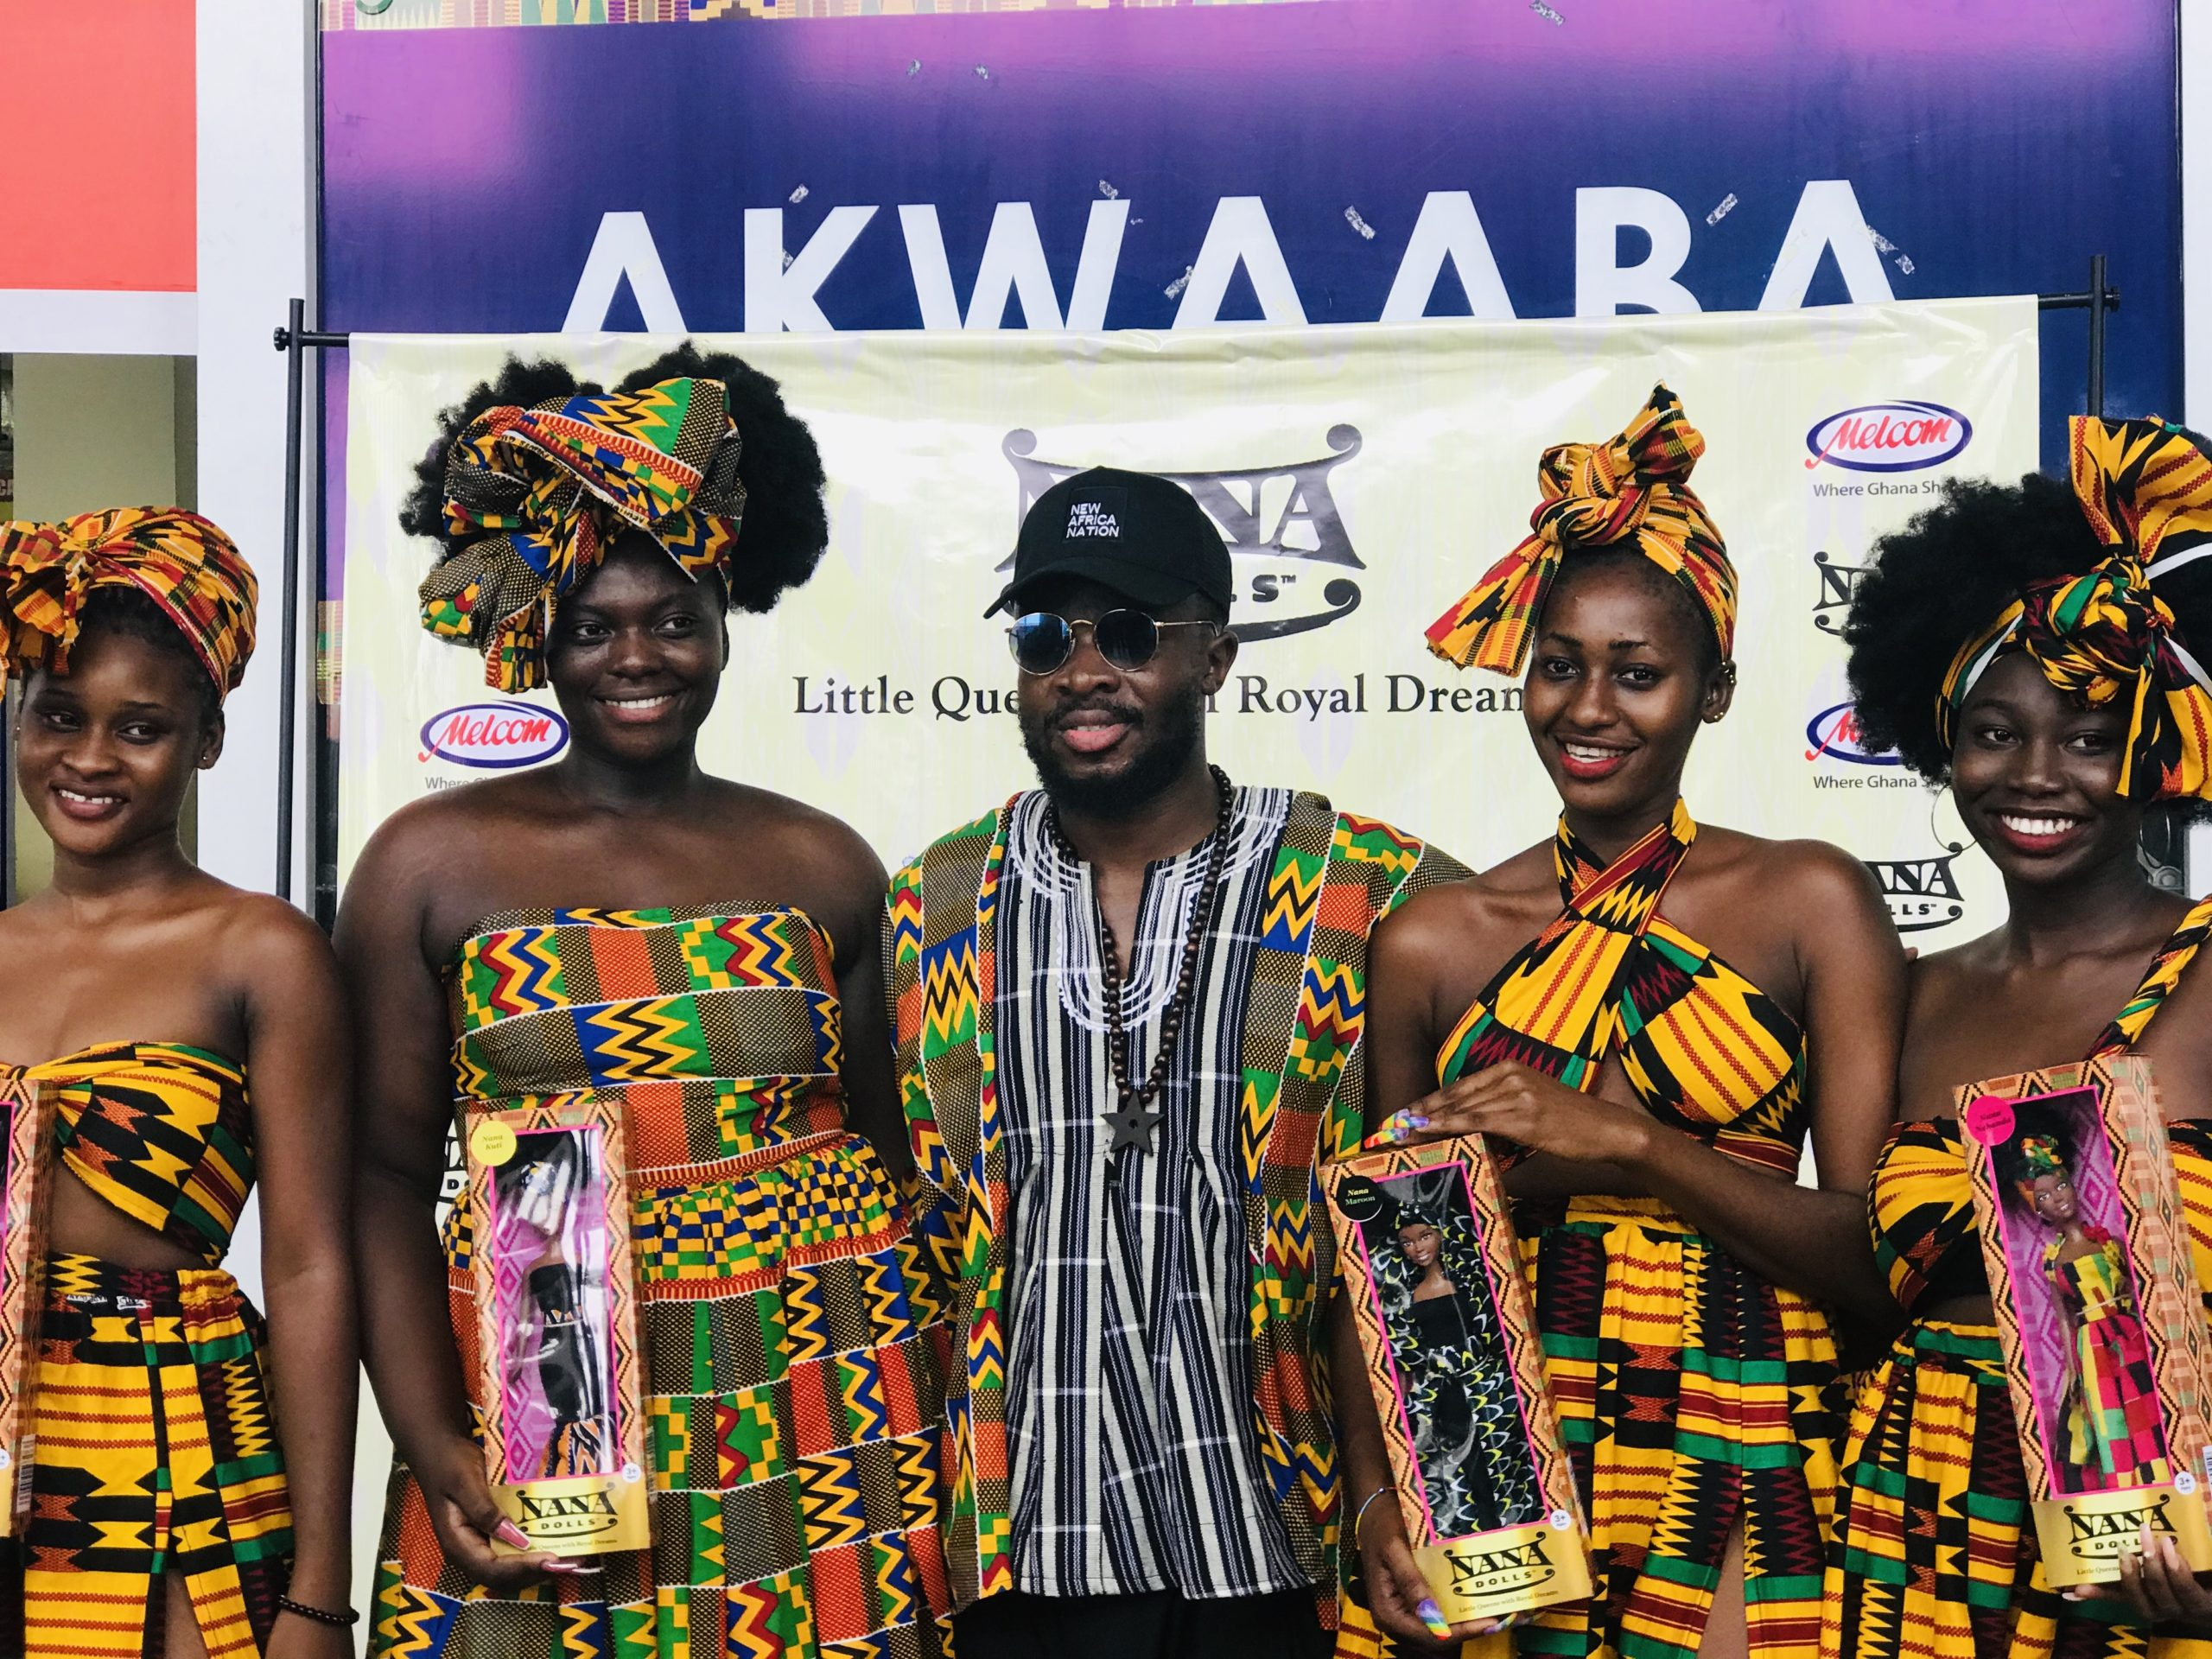 FUSE ODG'S  NANA DOLLS CAN NOW BE FOUND IN ALL MELCOM STORES ACROSS GHANA